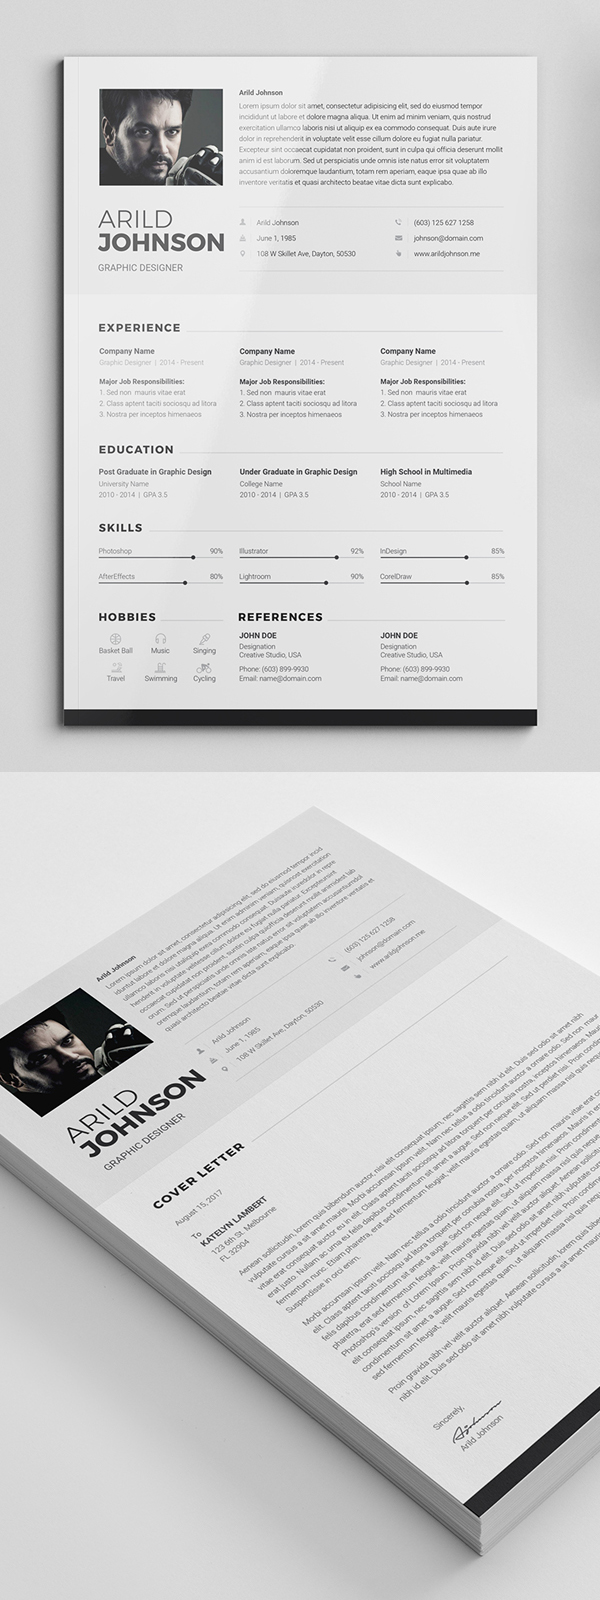 50 Free Resume Templates: Best Of 2018 -  6